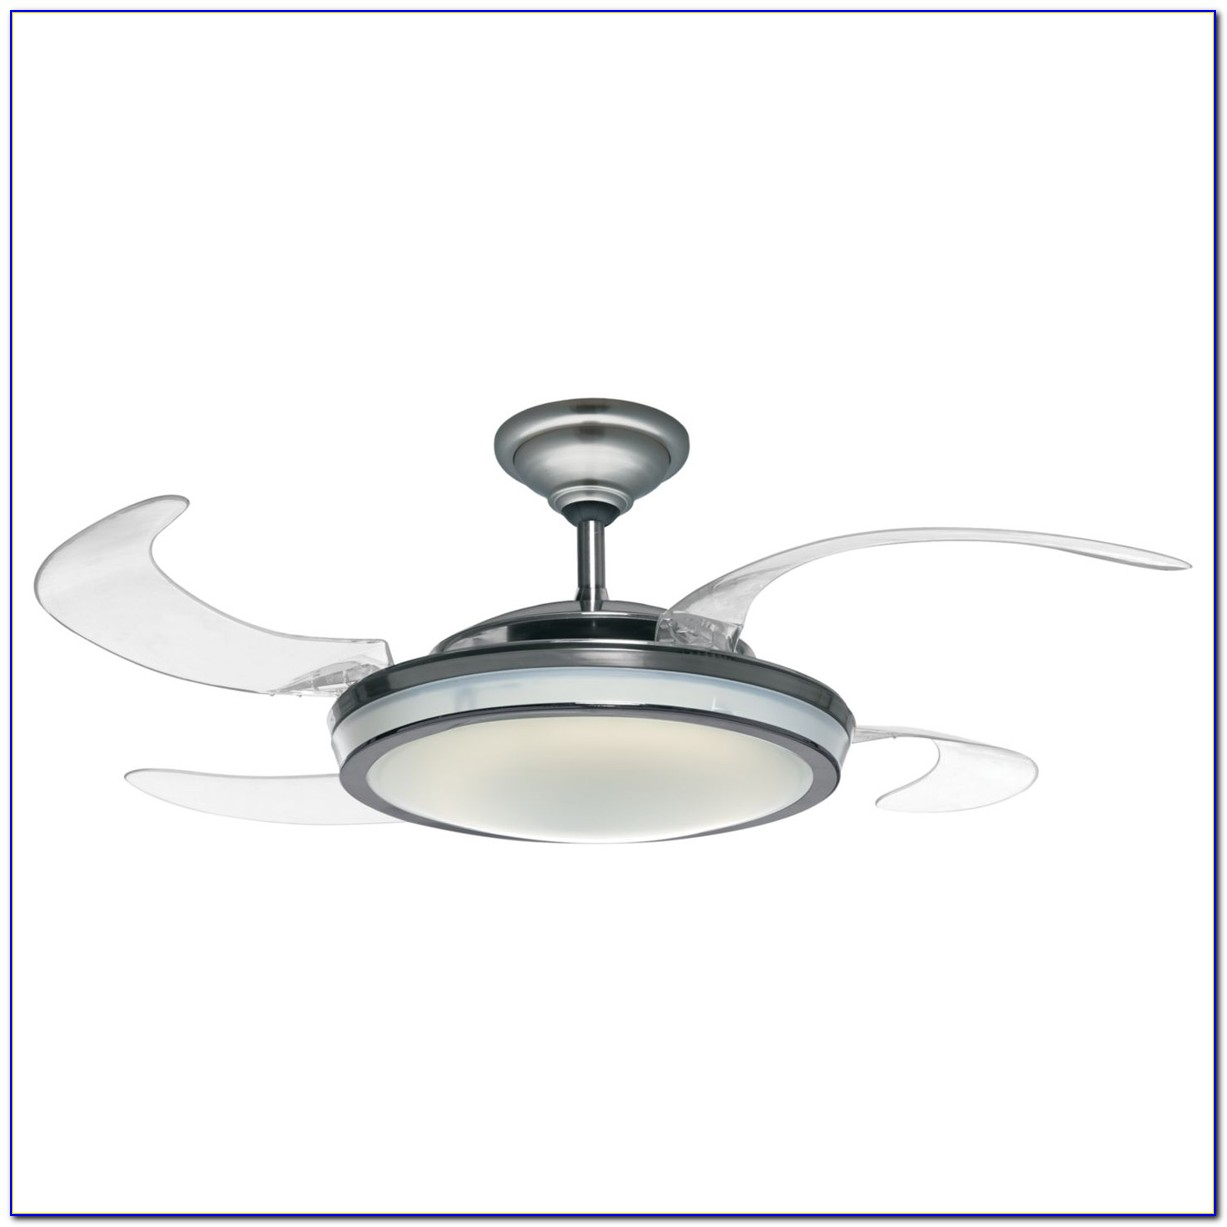 Retractable Blade Ceiling Fan